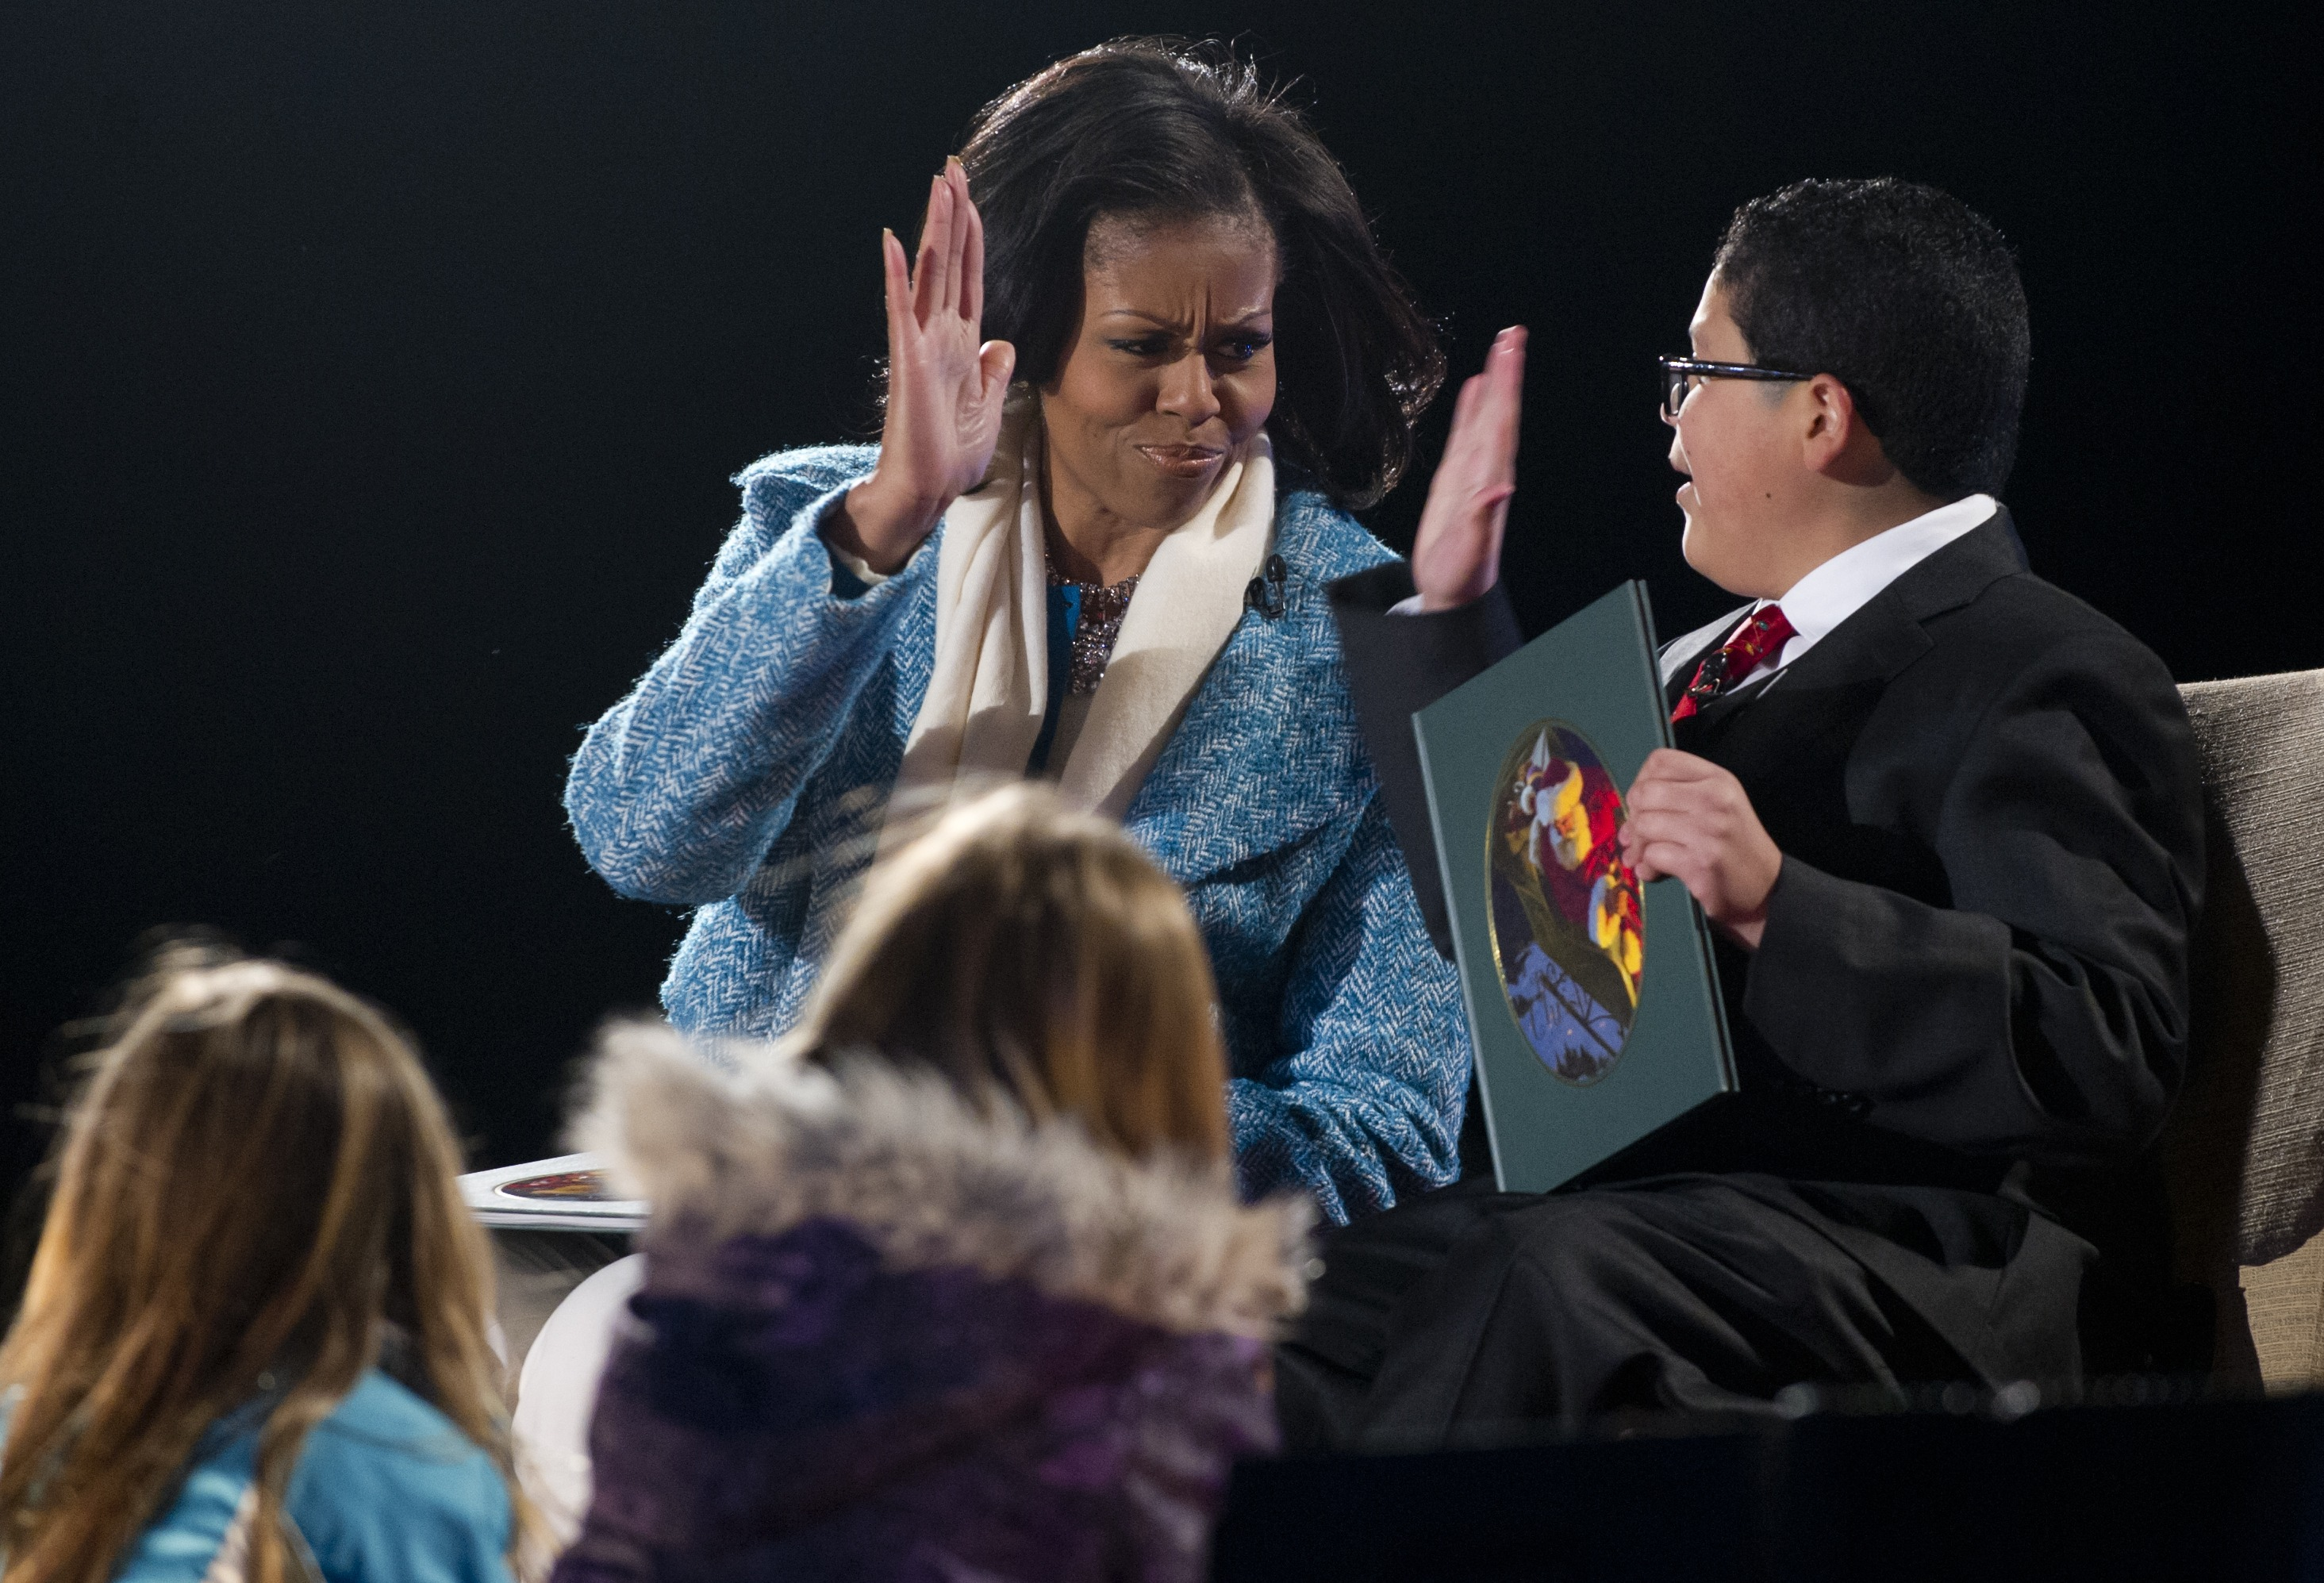 Modern Family star Rico Rodriguez received a celebratory clap from Michelle Obama during a Christmas 2012 event in Washington DC.